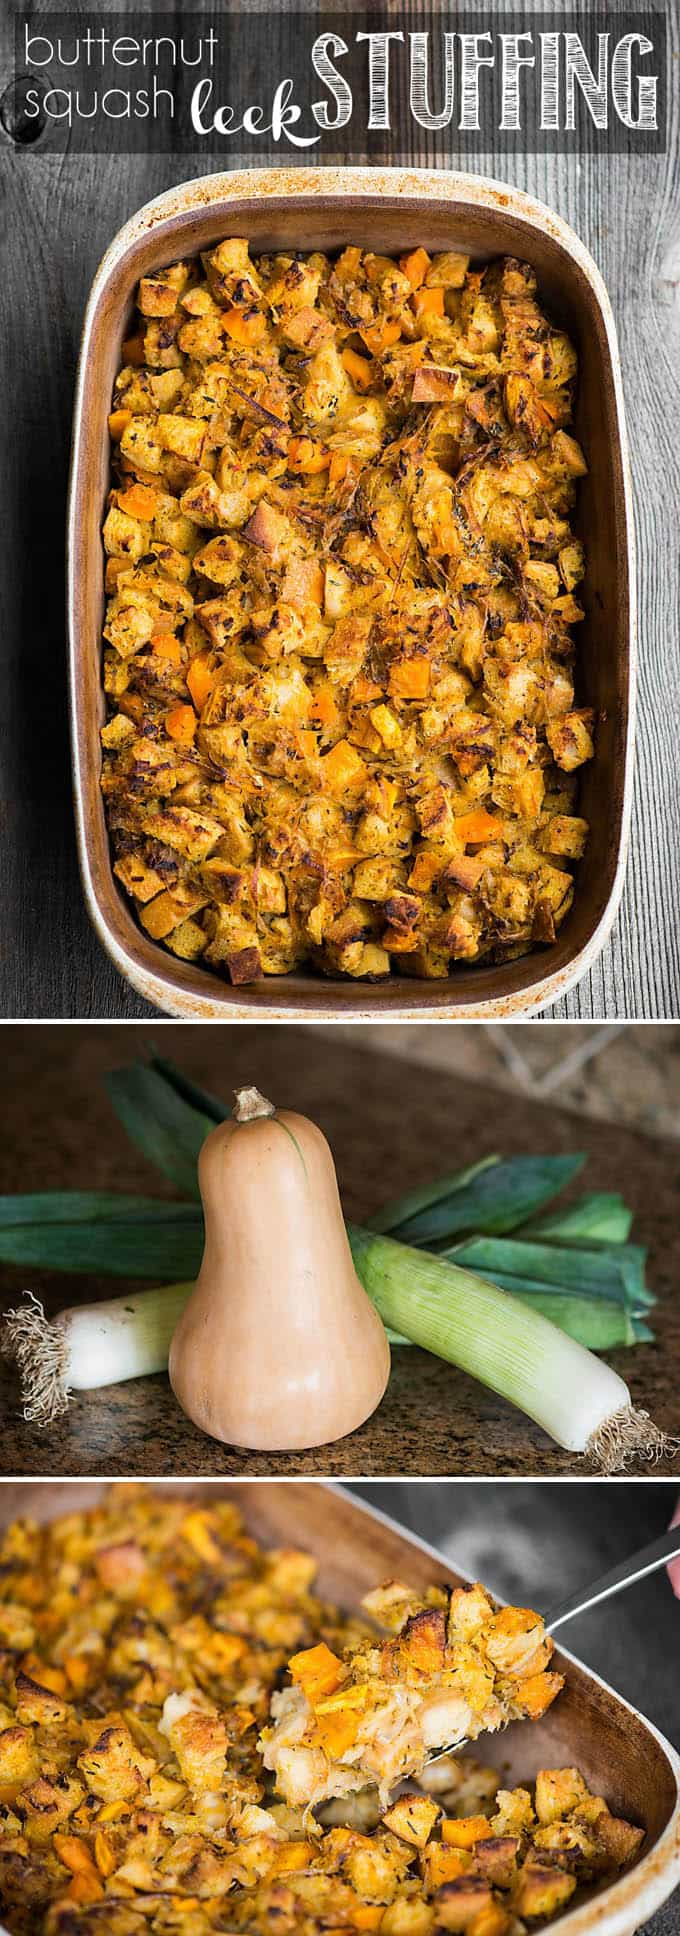 Butternut Squash Leek Stuffing is a fall favorite, perfect for Thanksgiving. This classic dressing side dish can be a great vegetarian option too! #stuffing #thanksgiving #butternut